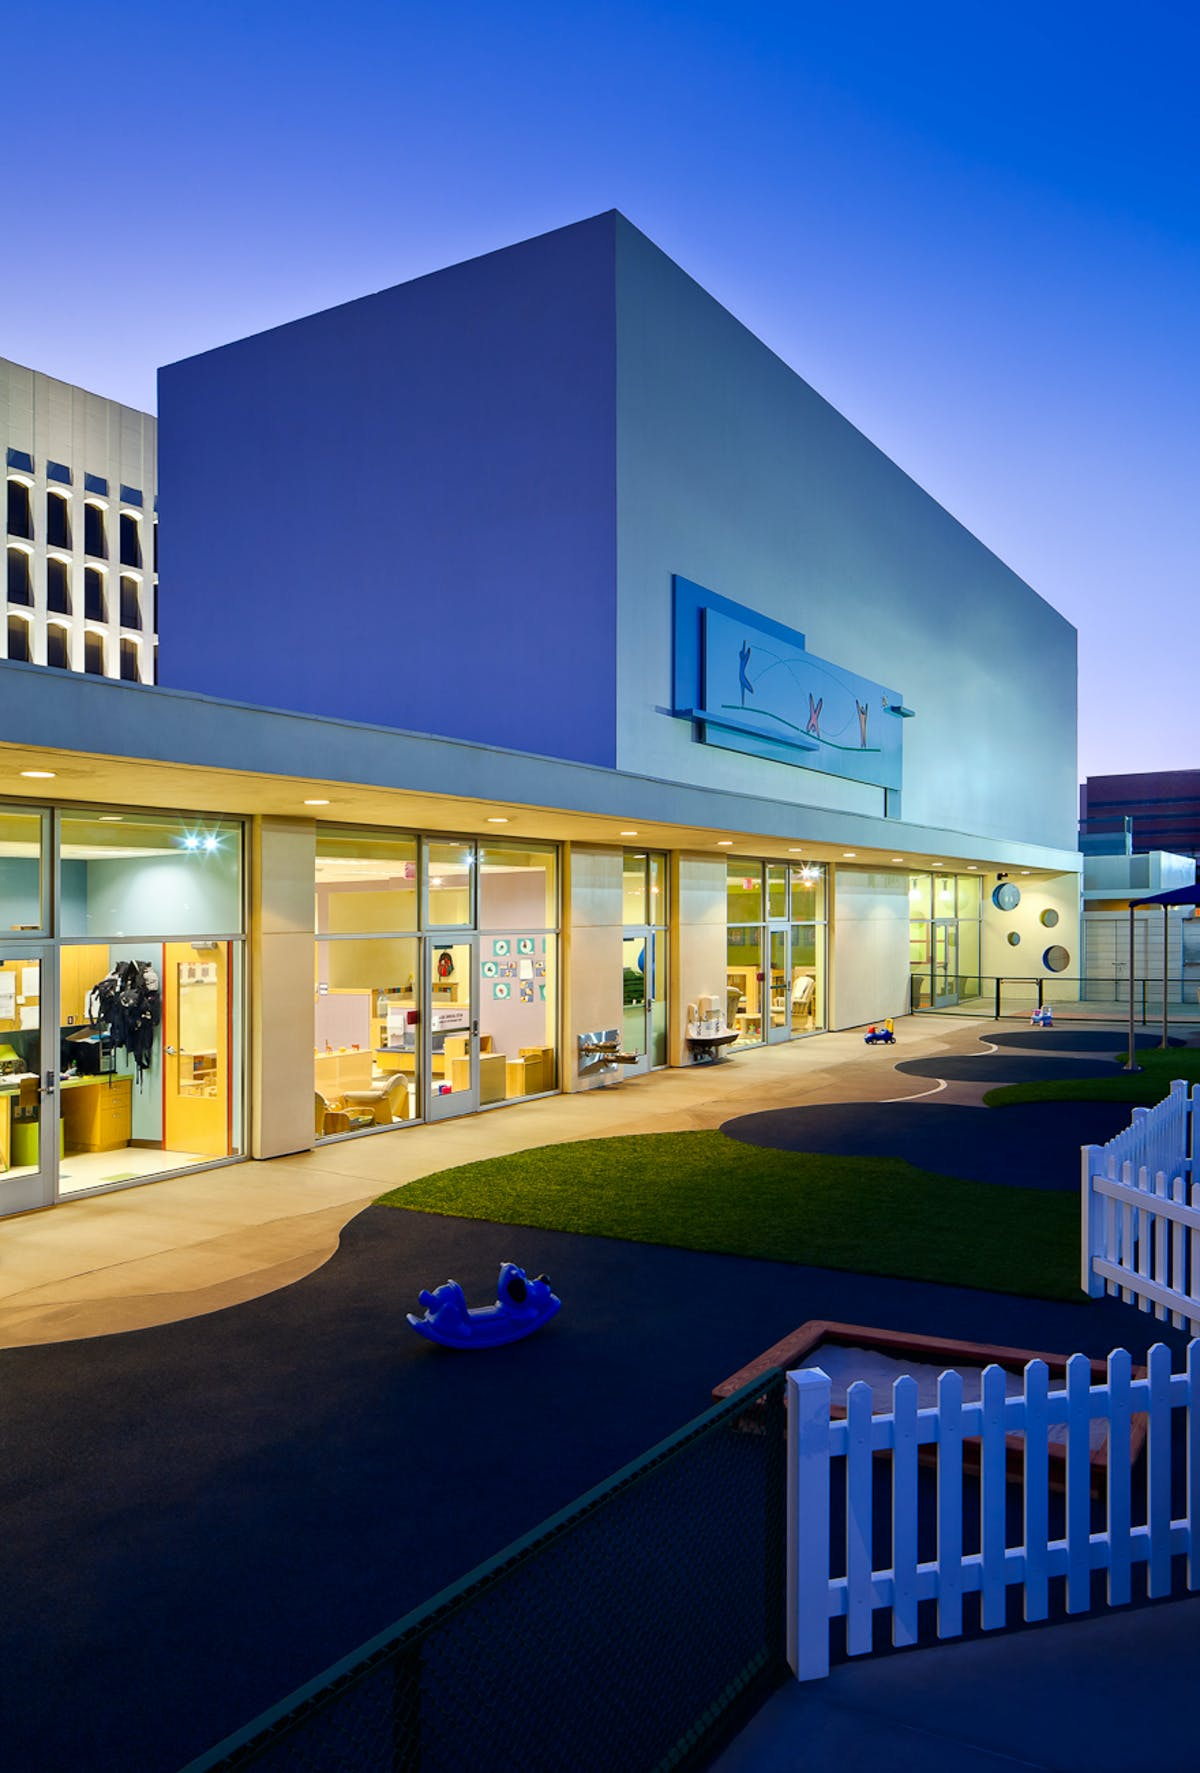 Day Care Center Design Google Search: Clay Aurell, AIA, LEED AP, NCARB